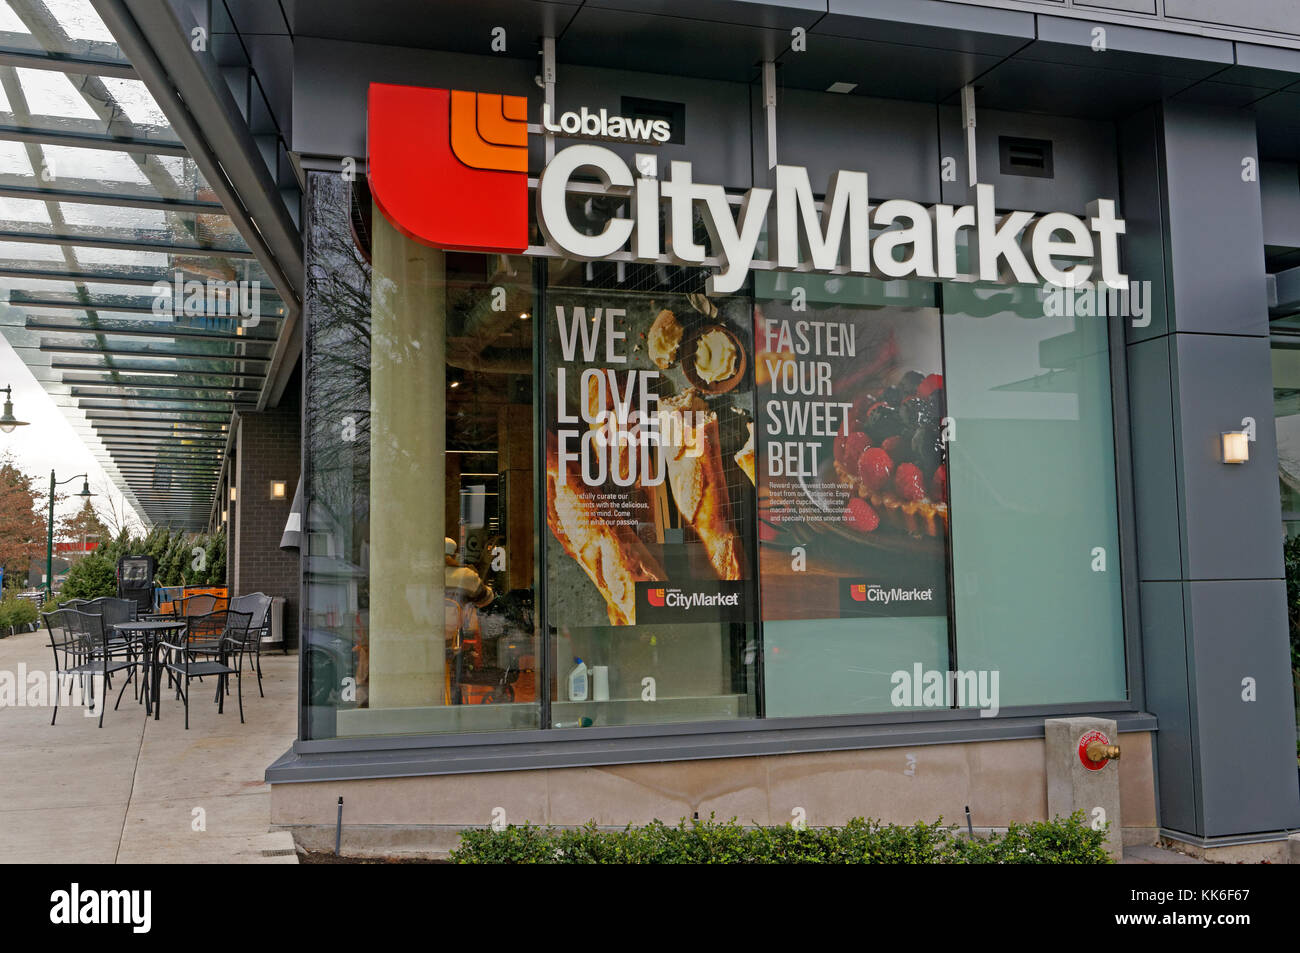 Loblaw's City Market grocery store on Arbutus Street  in Vancouver, BC, Canada Stock Photo